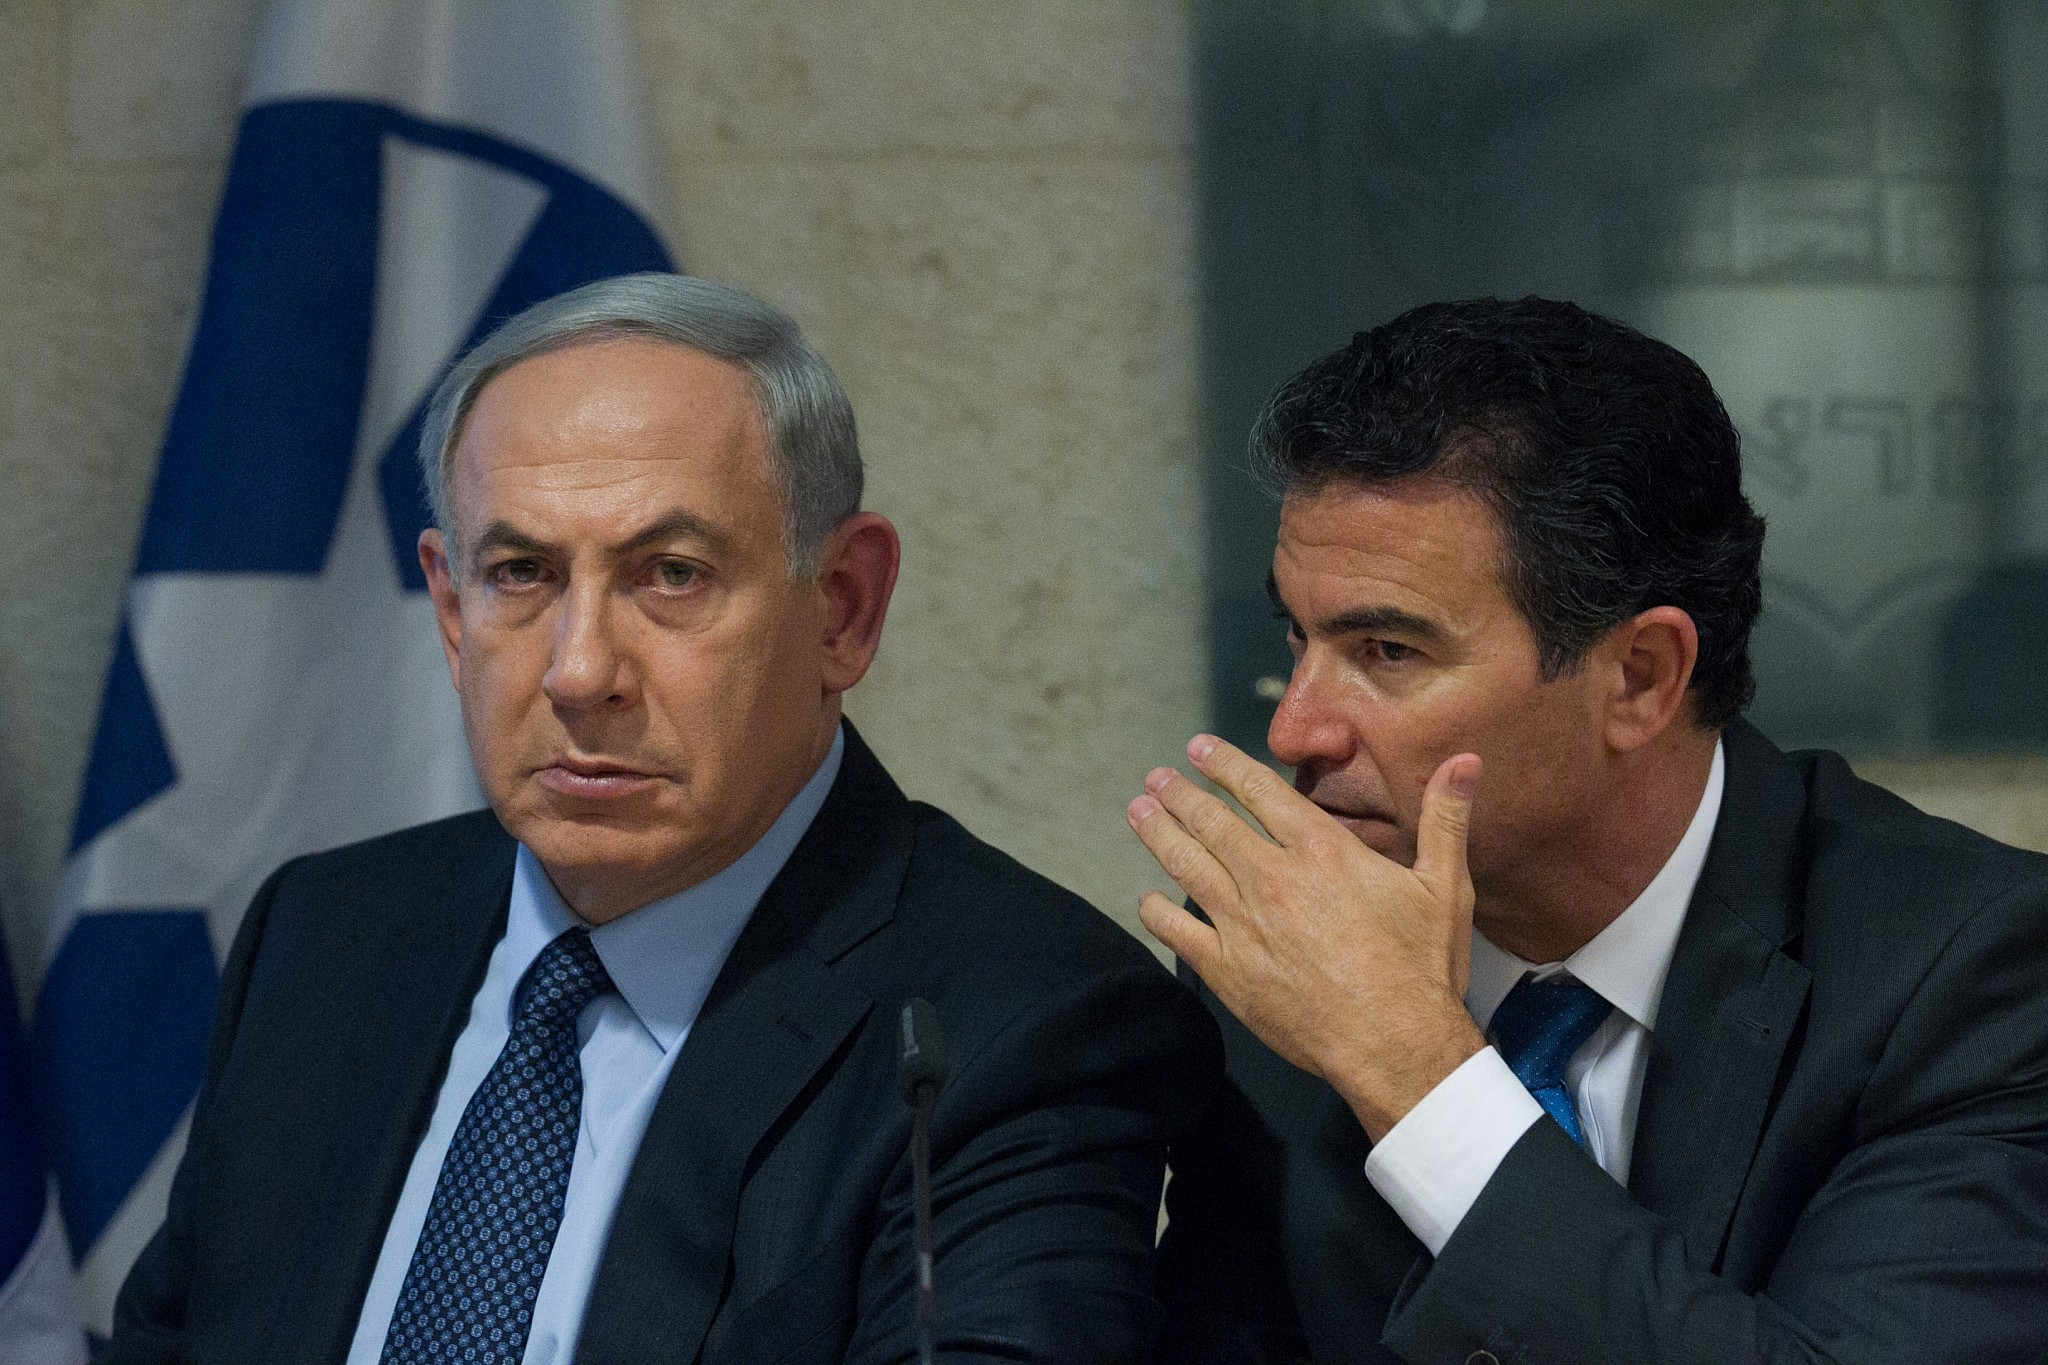 Head of Mossad to Outline Israeli Demands to President Biden for Rejoining Iranian Nuclear Deal